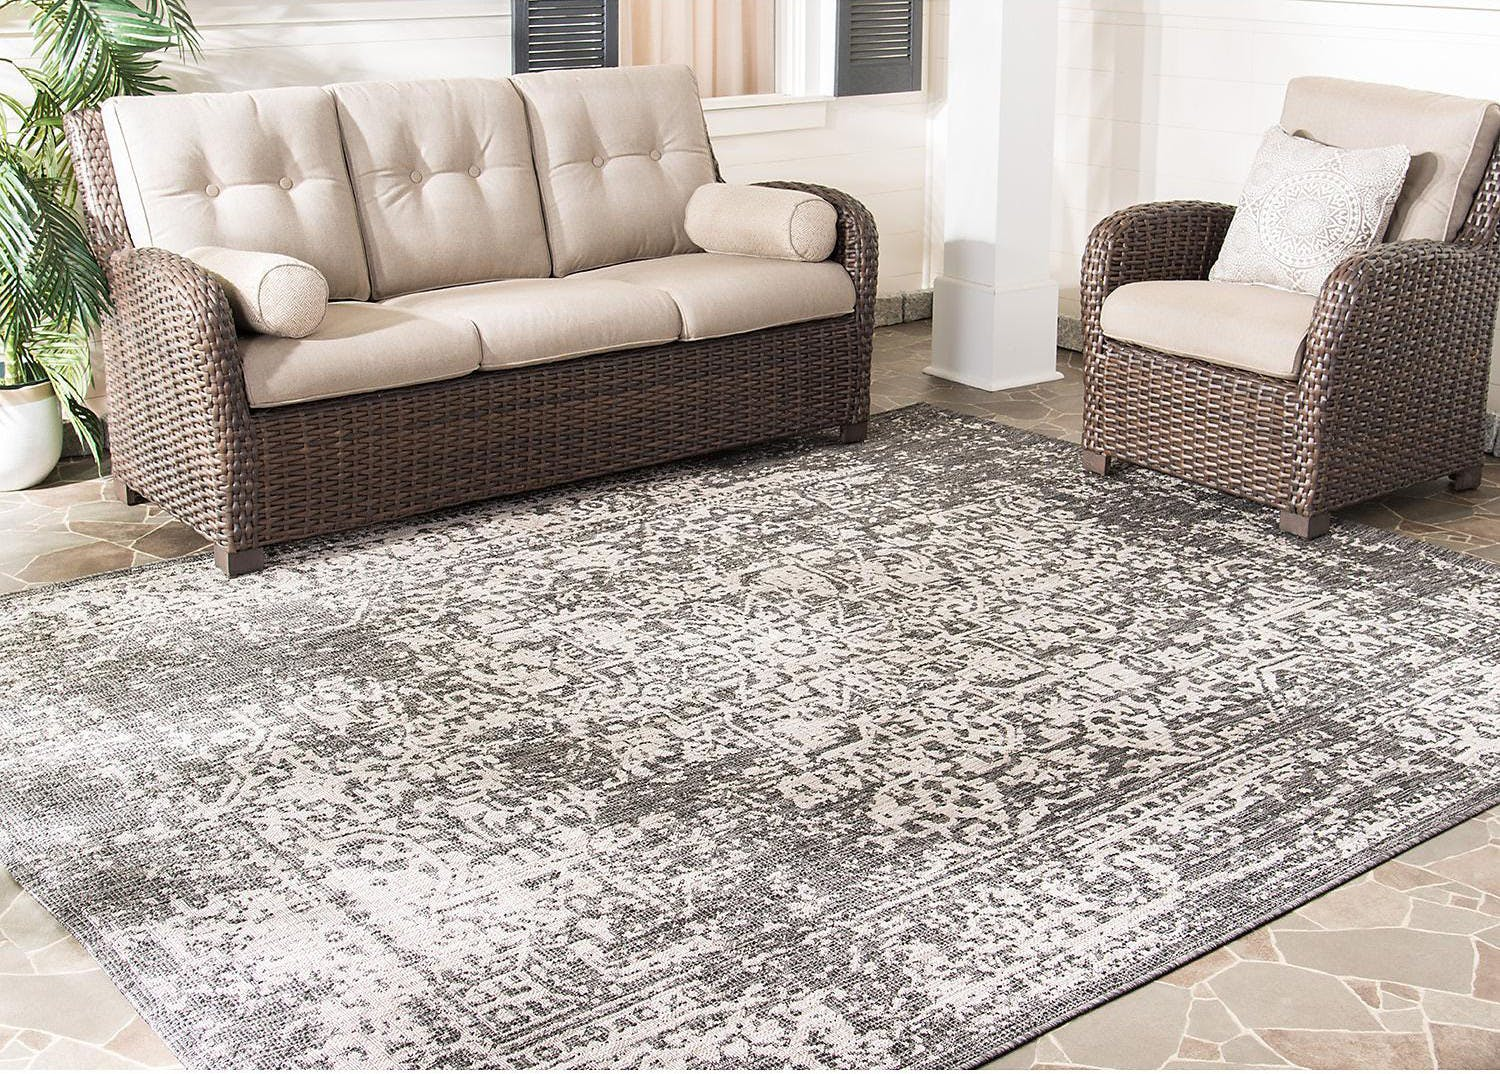 Indoor/Outdoor 8' x 10' Rugs, as Low as $60 at Sam's Club   The